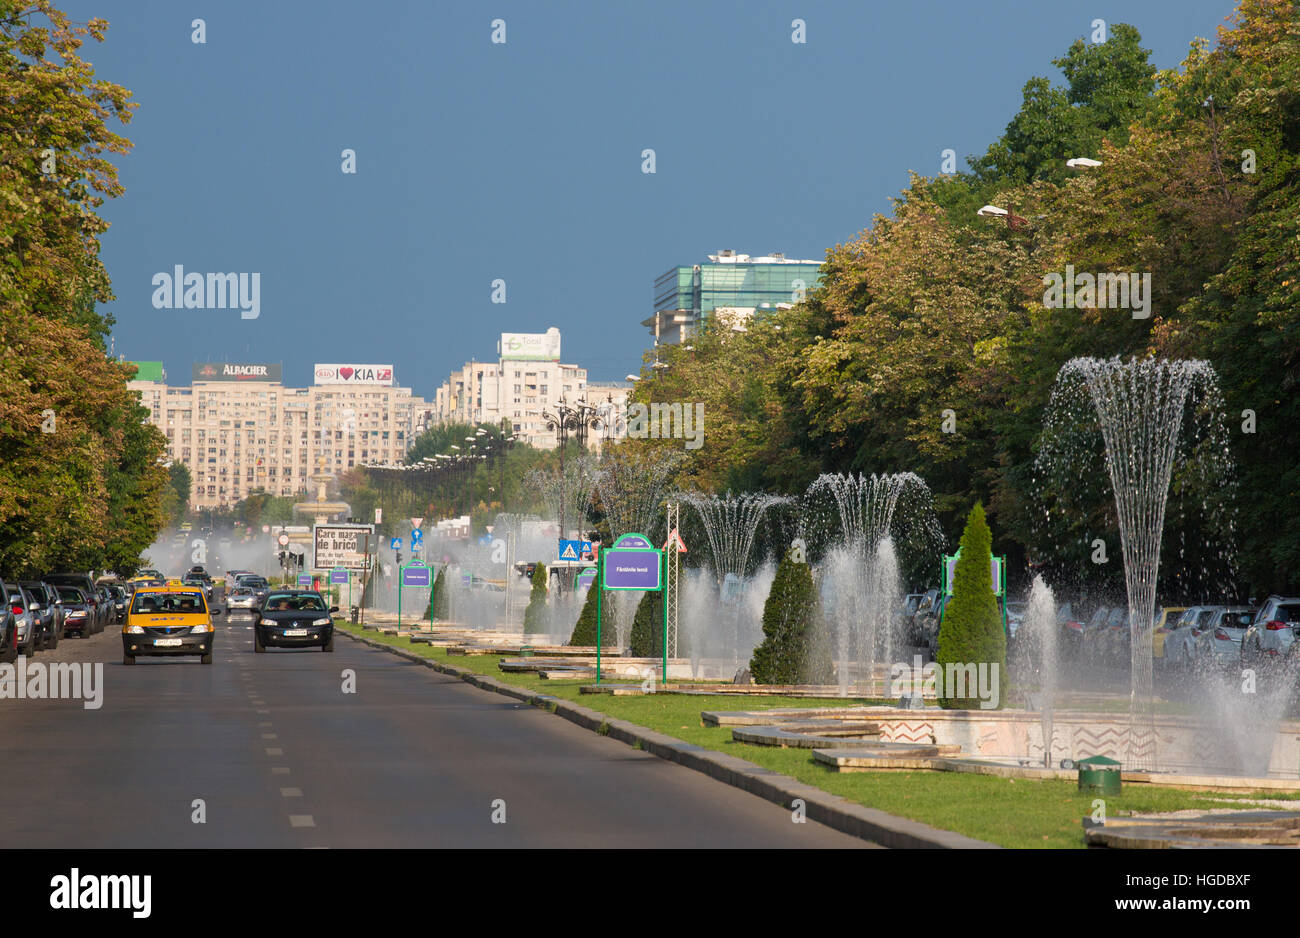 Romania, Bucharest City, Unirii Boulevard. - Stock Image